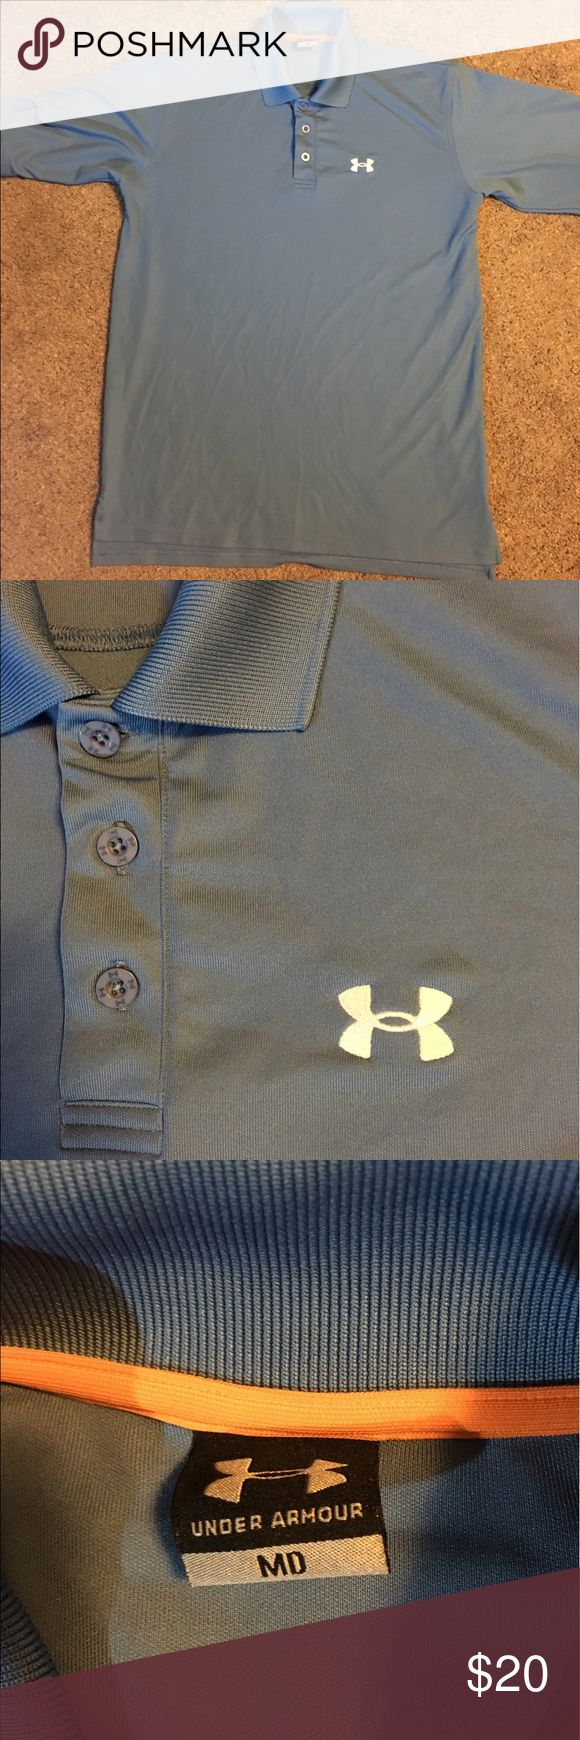 ‼️ FLASH SALE ‼️‼️Under Armour Polo FLASH SALE PRICE‼️ get it before it's gone! Under Armour golf polo in a light blue, excellent condition with little signs of wear. It's a loose fit medium. Under Armour Shirts Polos